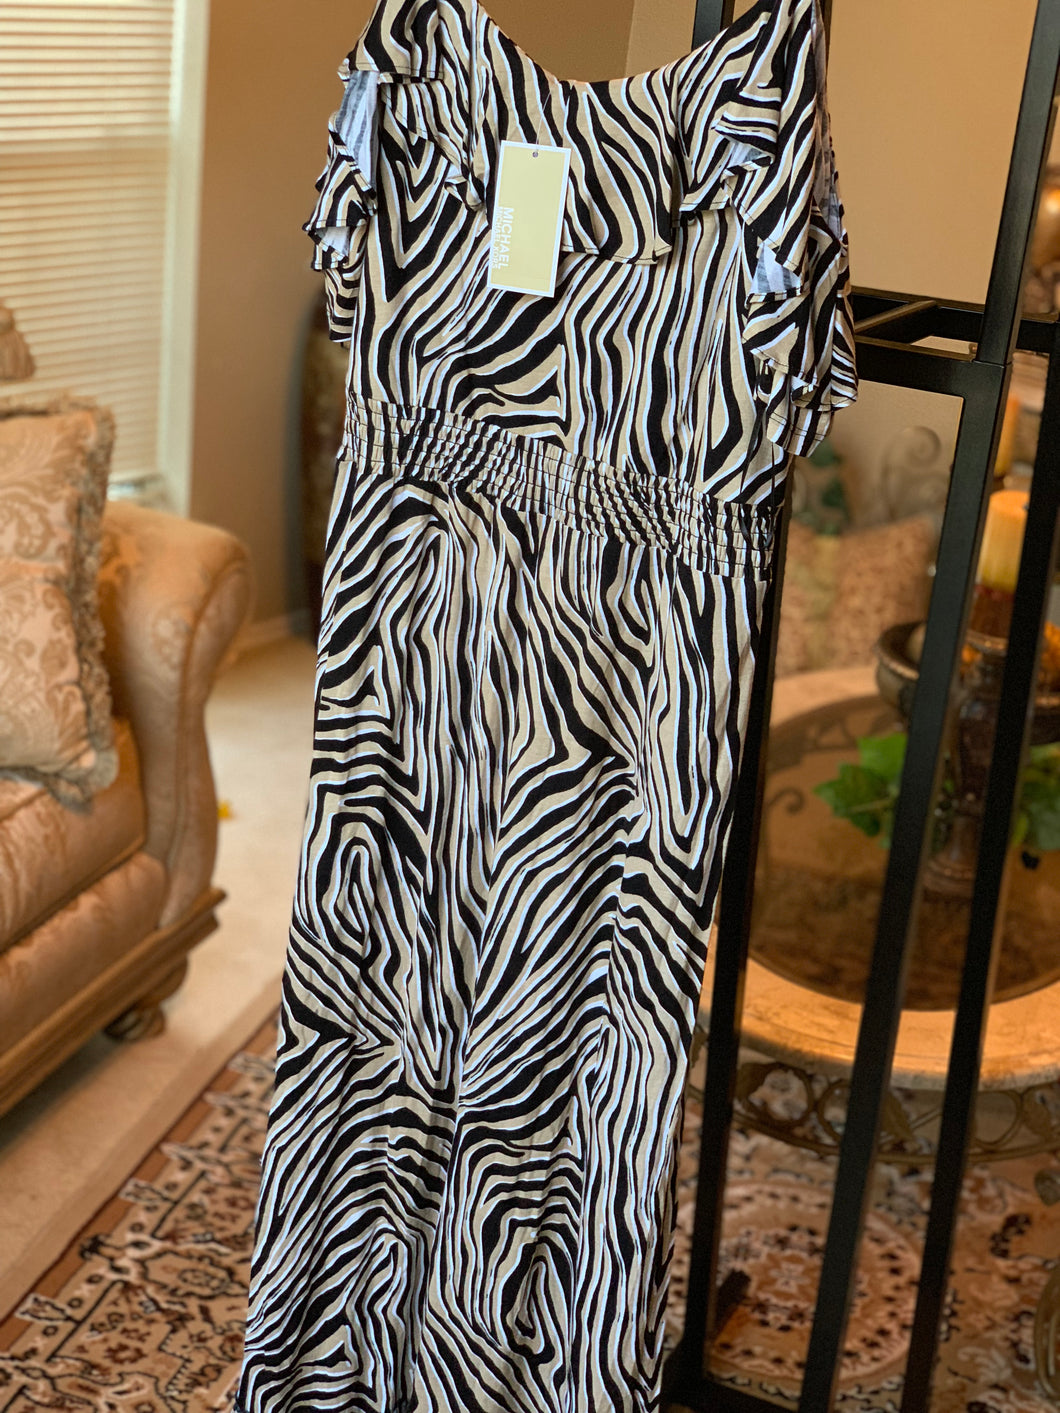 MICHAEL KORS MAXI DRESS SIZE LARGE